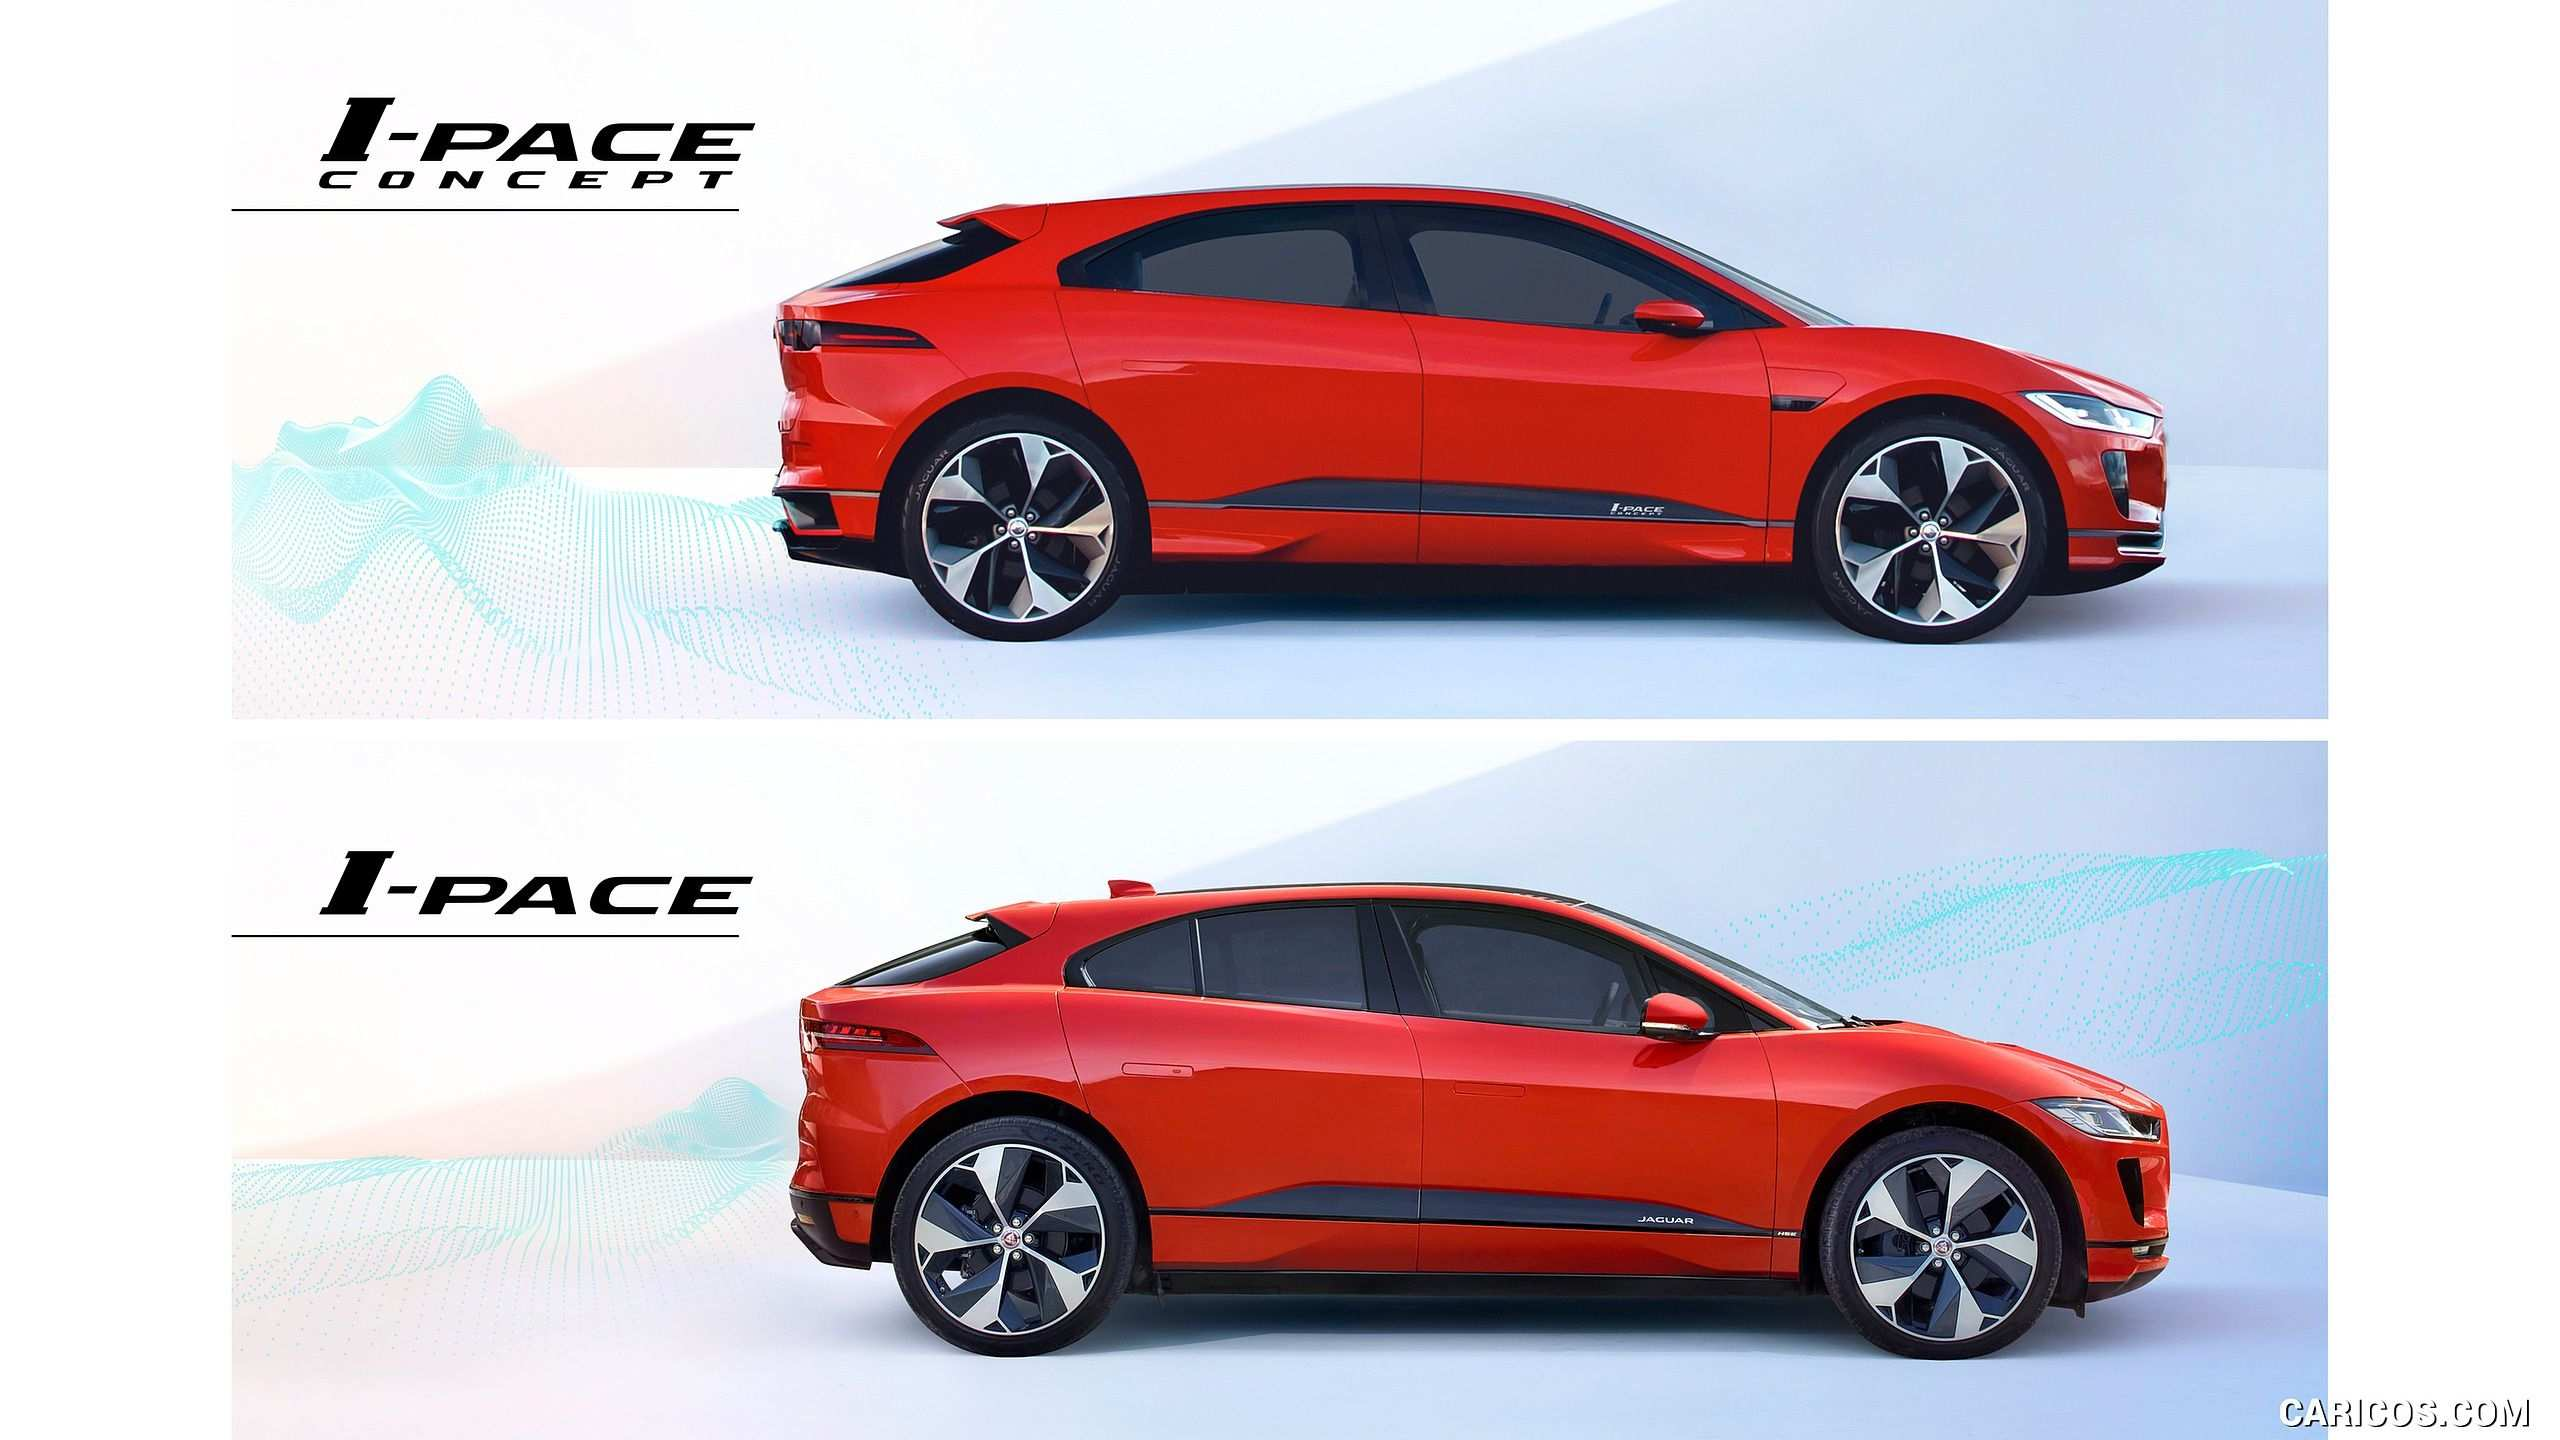 93 Great The 2019 Jaguar Vehicles Concept Redesign And Review Interior with The 2019 Jaguar Vehicles Concept Redesign And Review